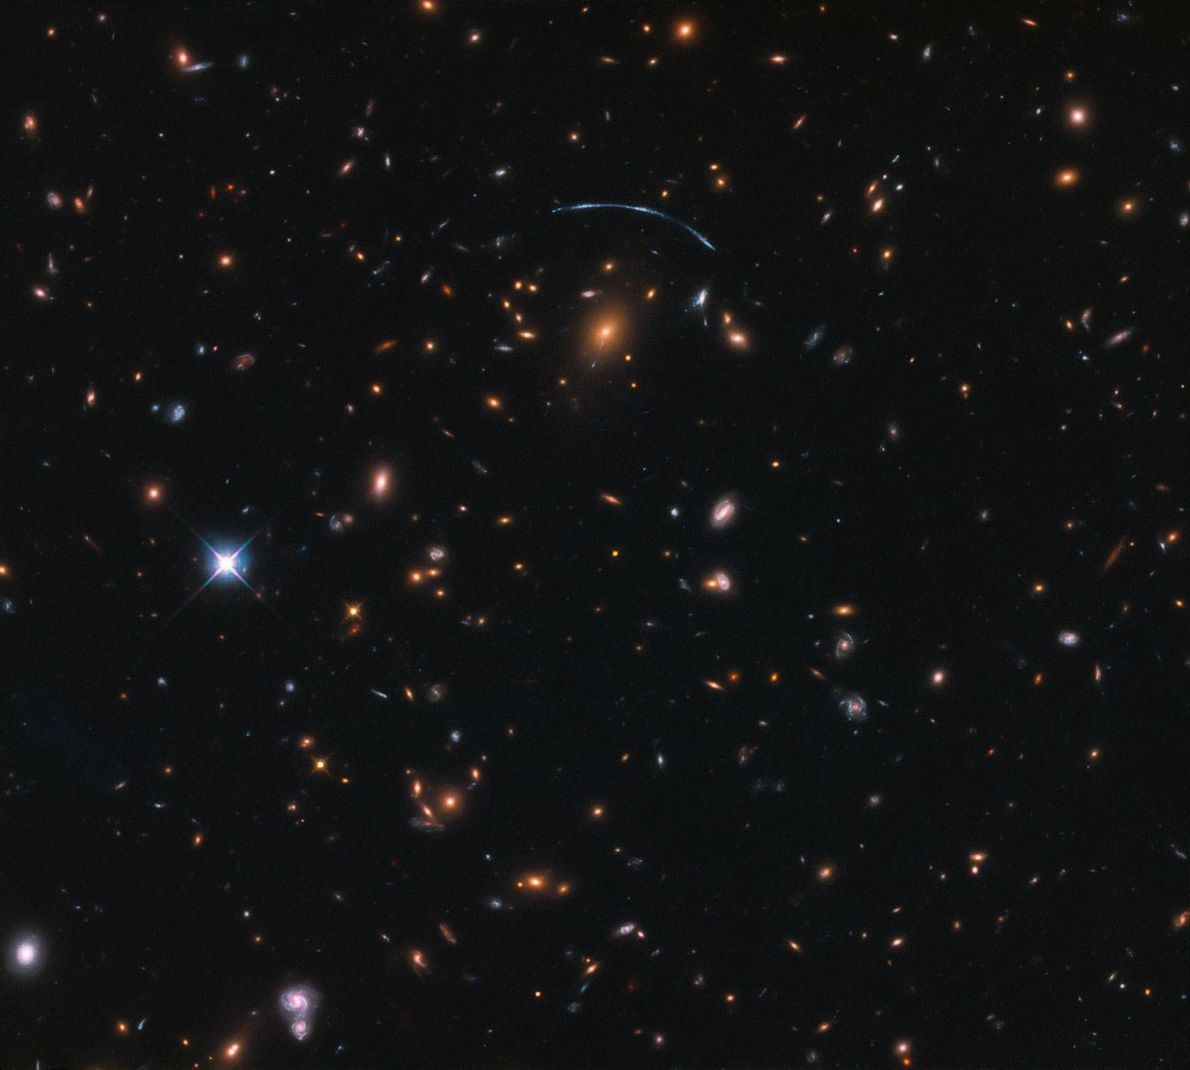 In this image, the gravitational influence of a massive galaxy cluster is causing a phenomenon called ...